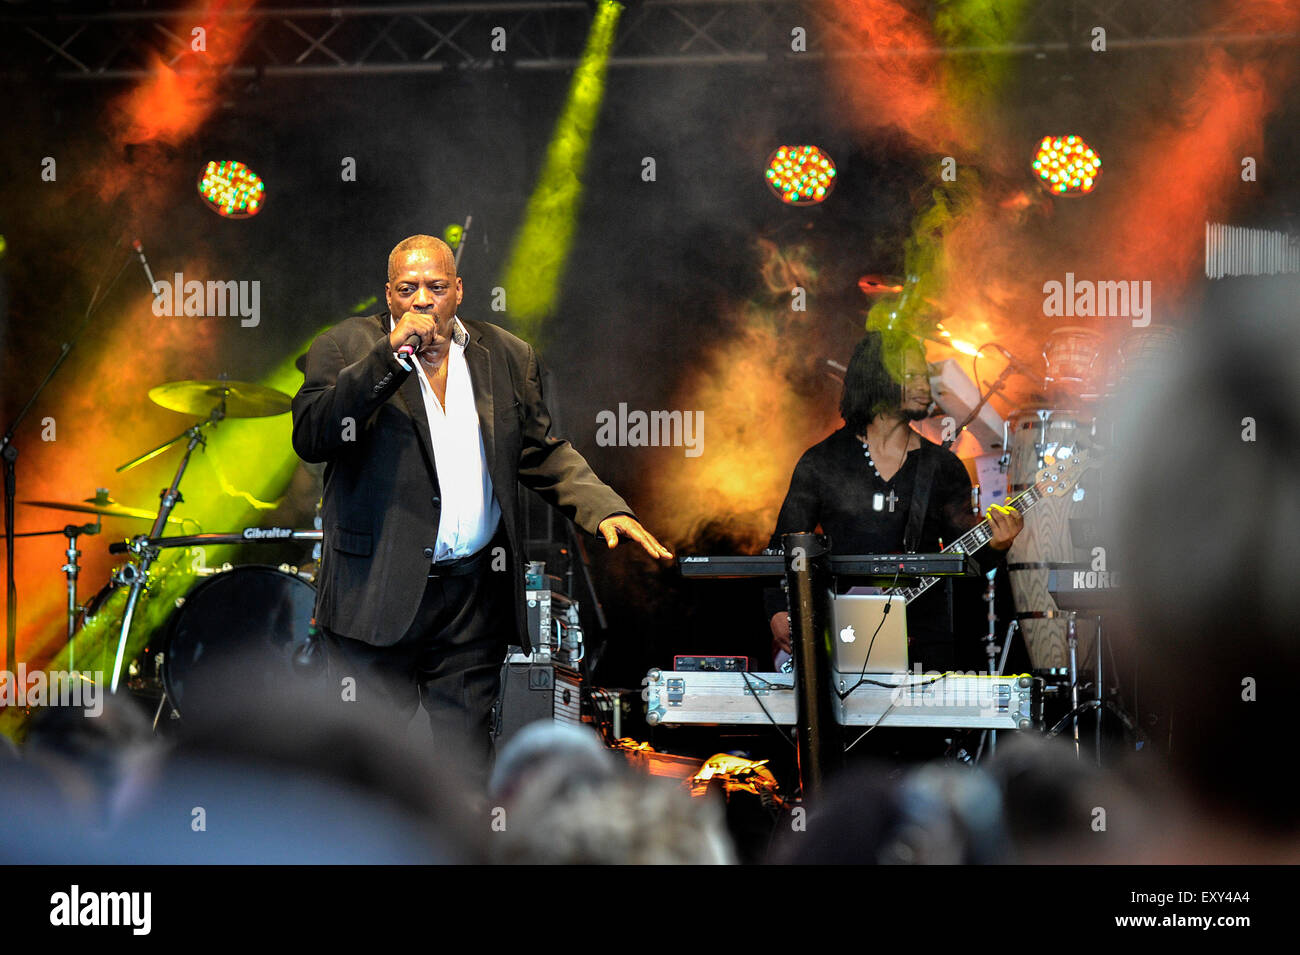 Brentwood, Essex.  17th July, 2015.  The 80's singer Alexander O'Neal entertains a sell-out crowd at the Brentwood - Stock Image